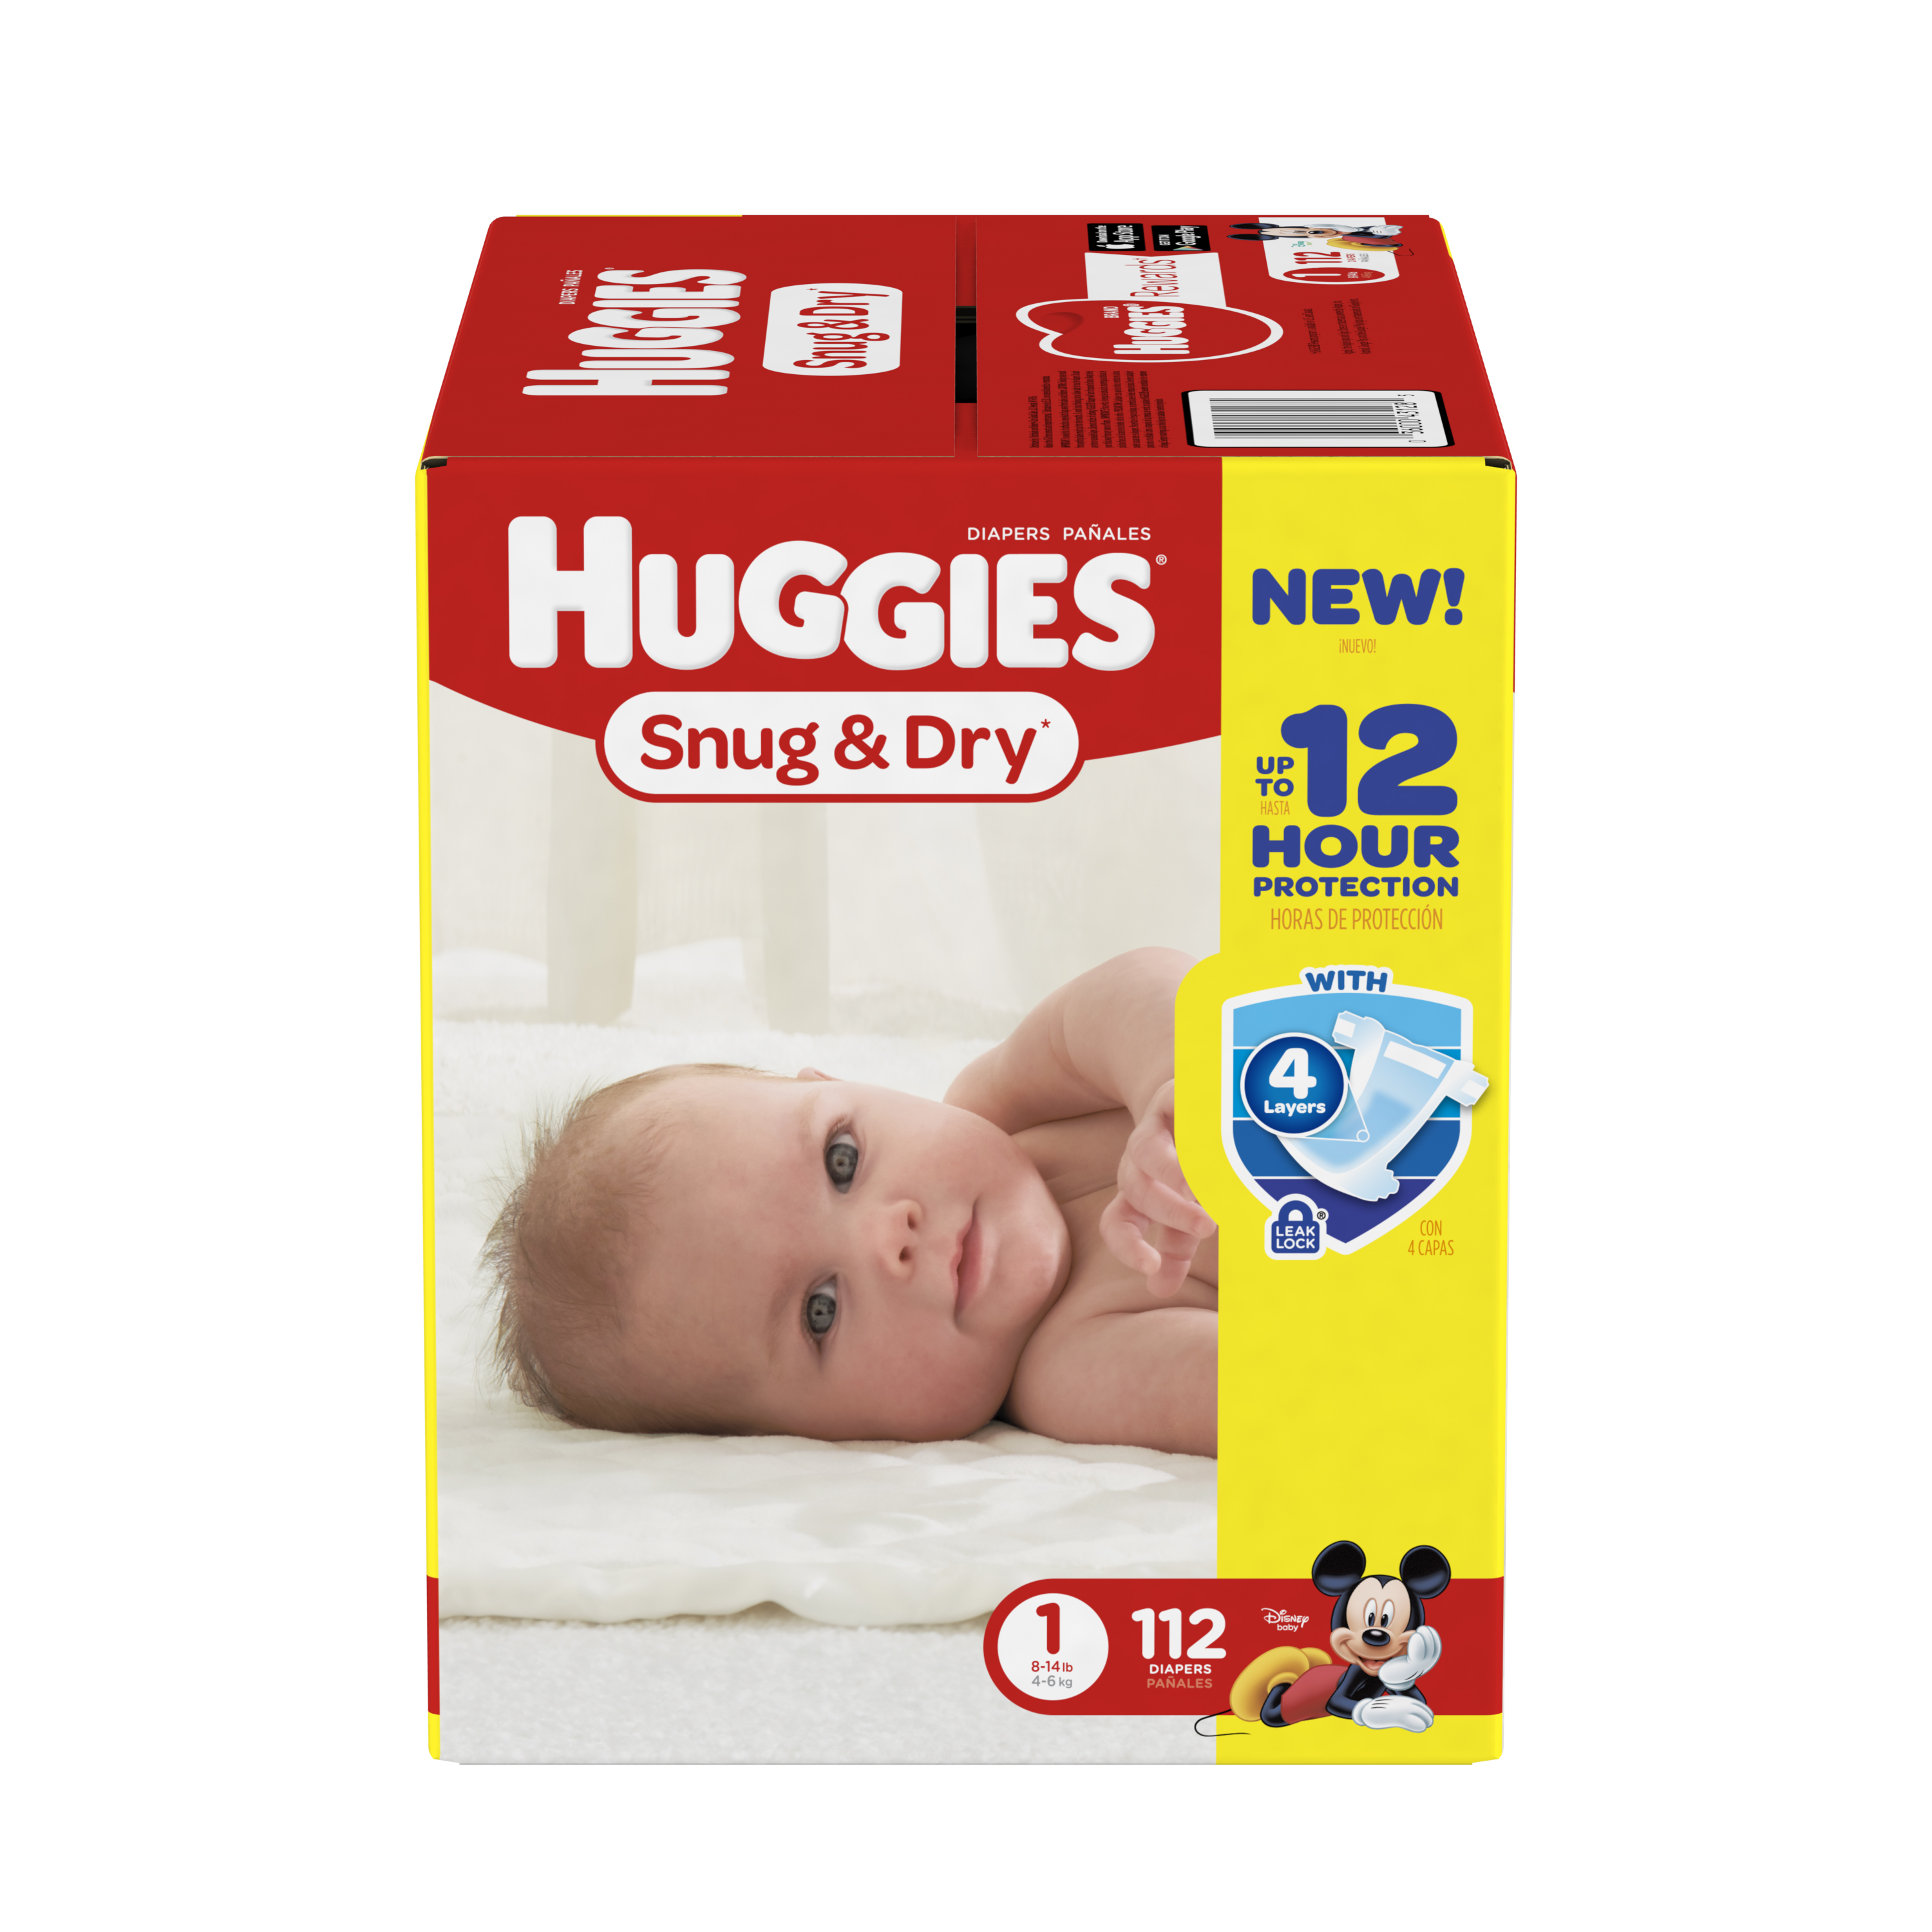 HUGGIES Snug & Dry Diapers, Size 1, 112 Diapers